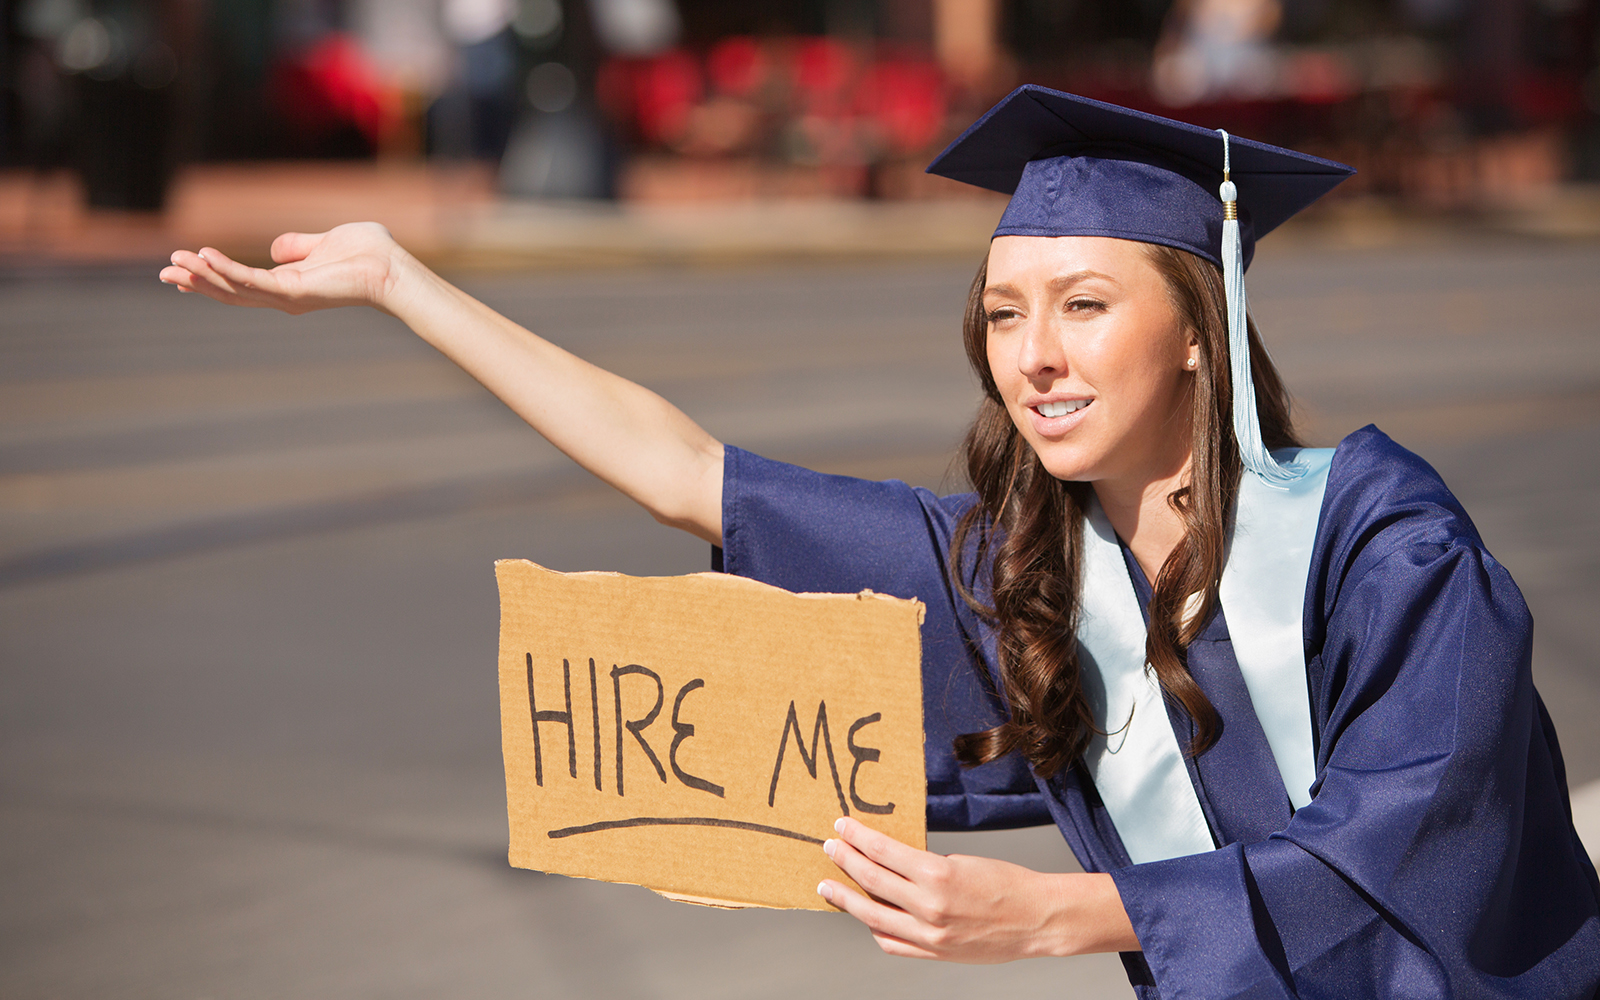 Dean's Blog: Graduate with Hire Me Sign Correcting a Common Misconception About College Graduates and Their Prospects